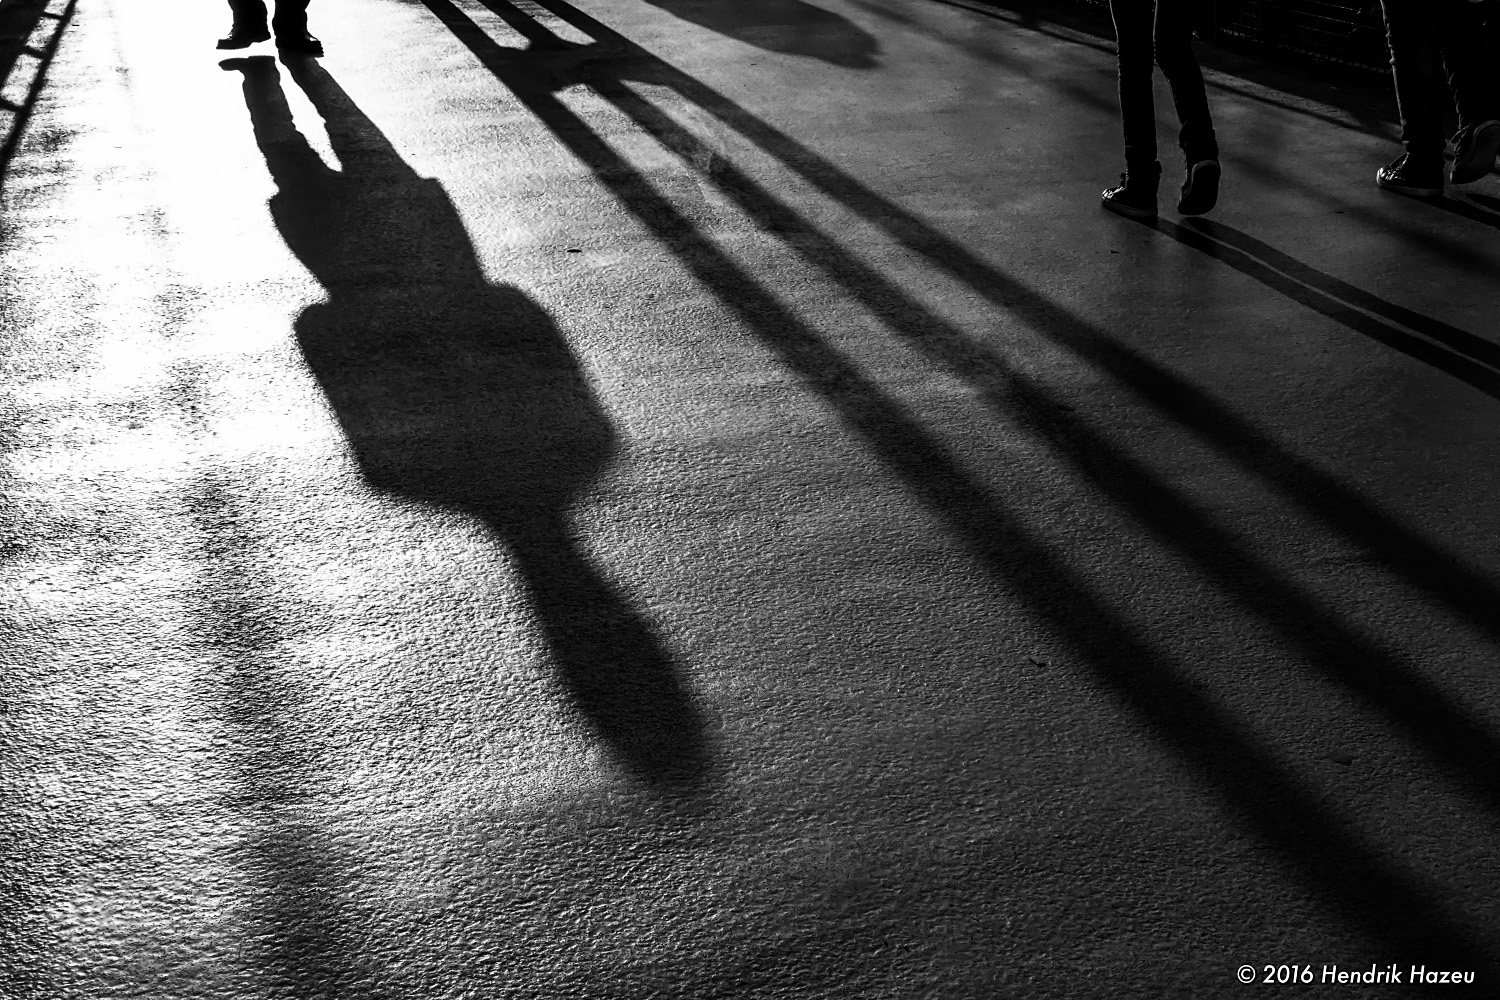 People casting diagonal shadows - Found with XF 35 mm f2 WR on X-Pro2